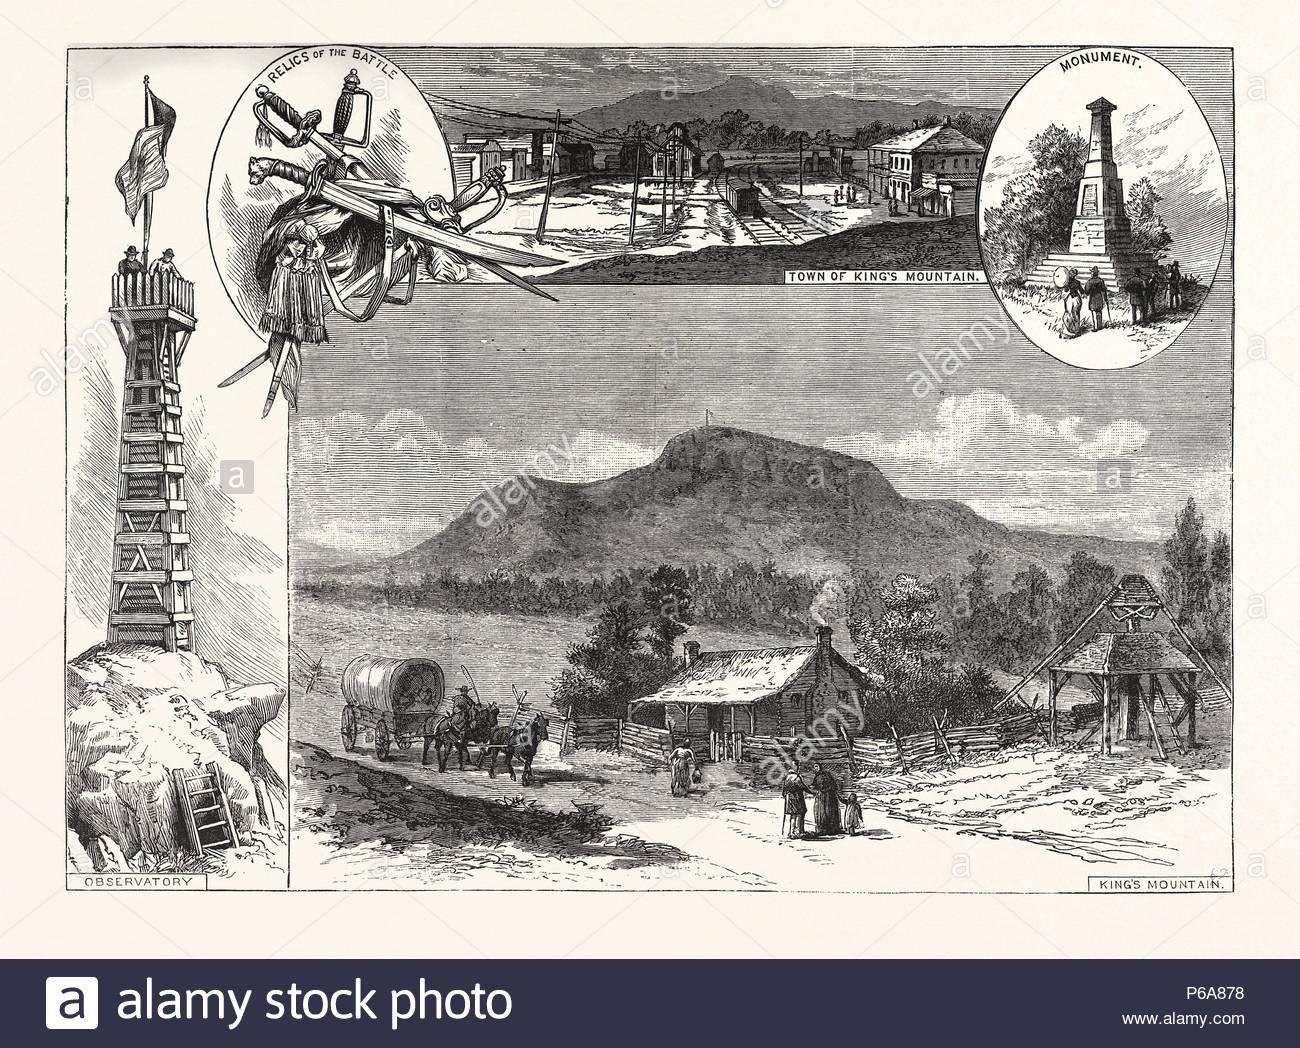 kings-mountain-centennial-engraving-1880-